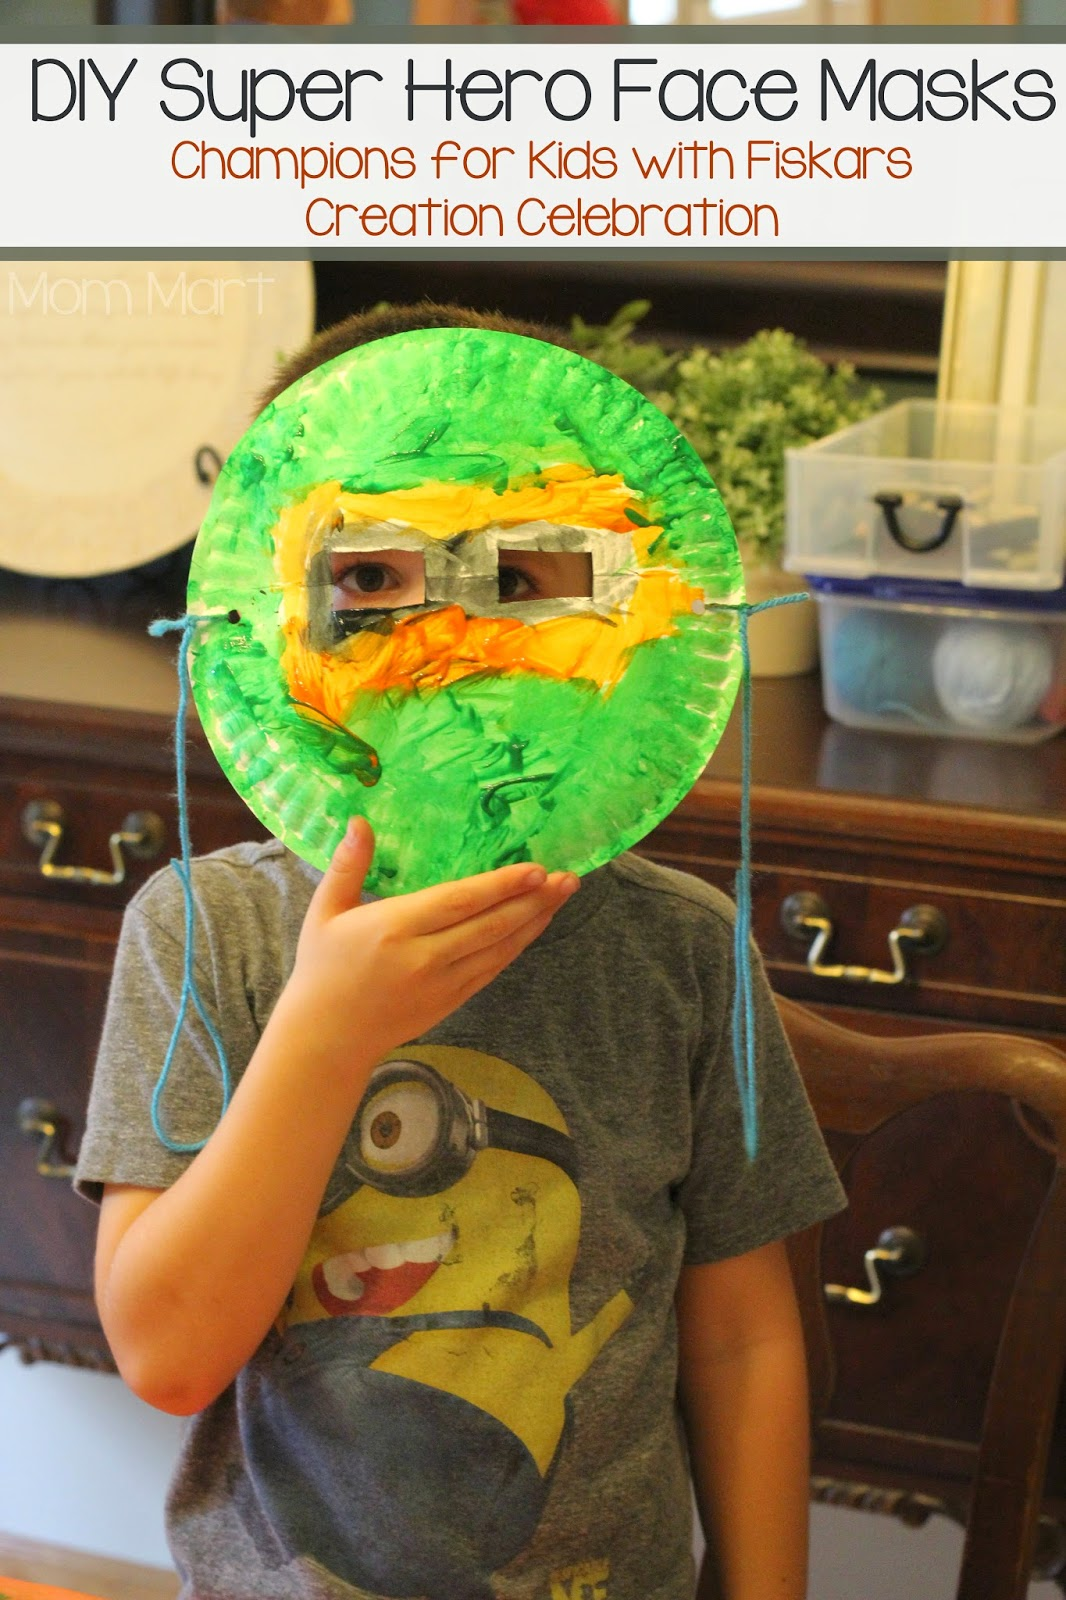 DIY Super Hero Face Masks: Champions for Kids with Fiskars